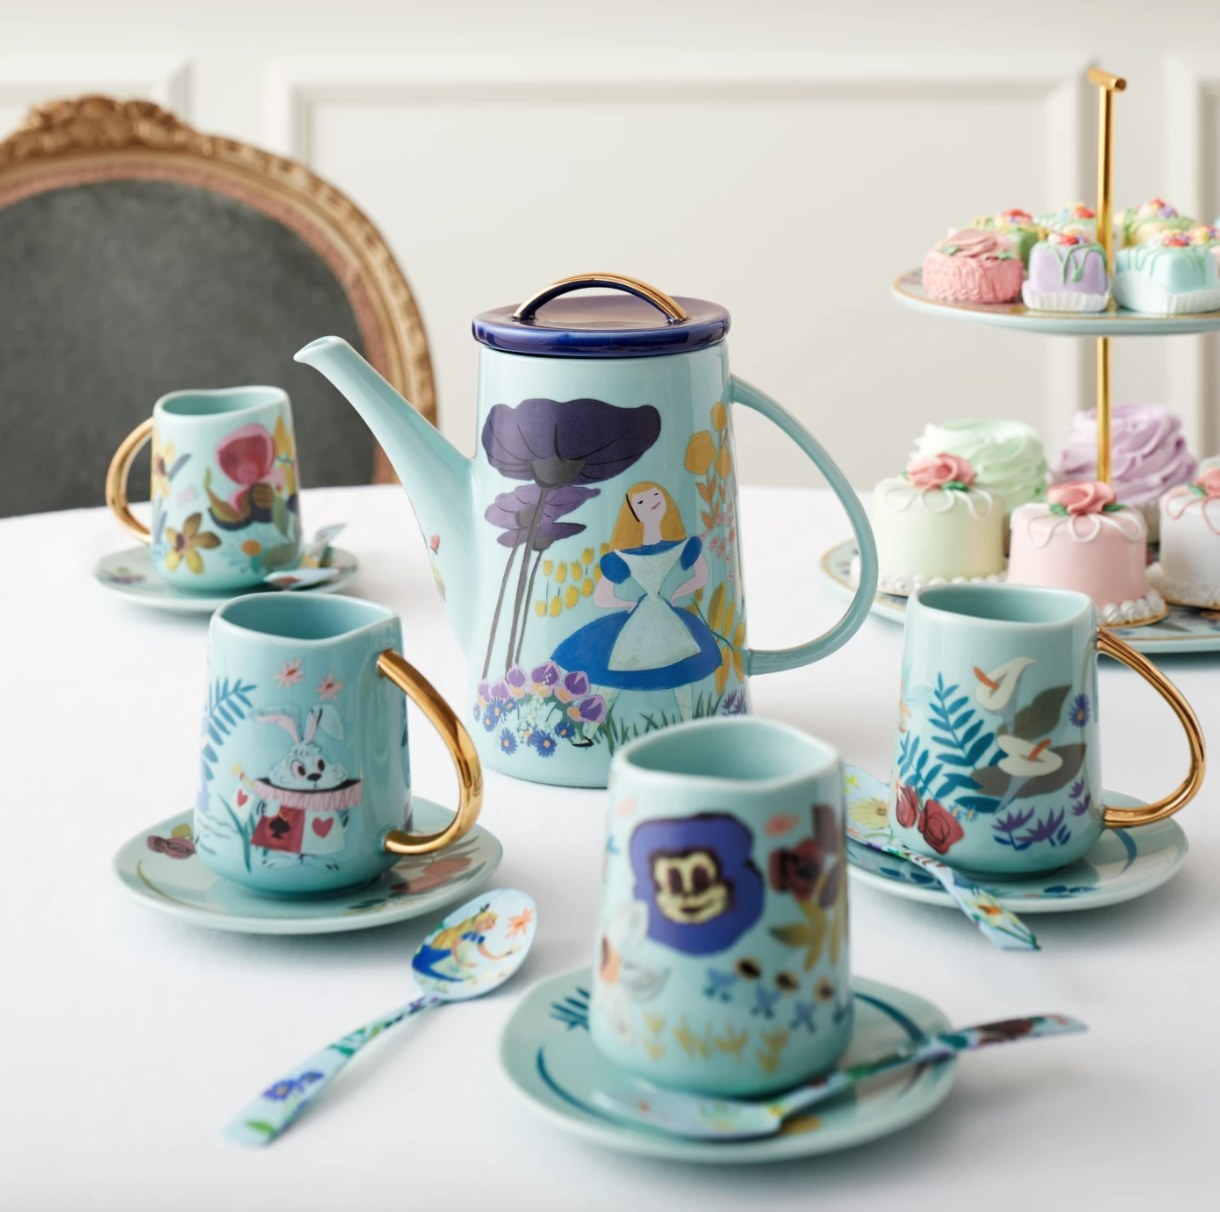 Four blue teacups and saucers with gold handles and Alice in Wonderland decoration